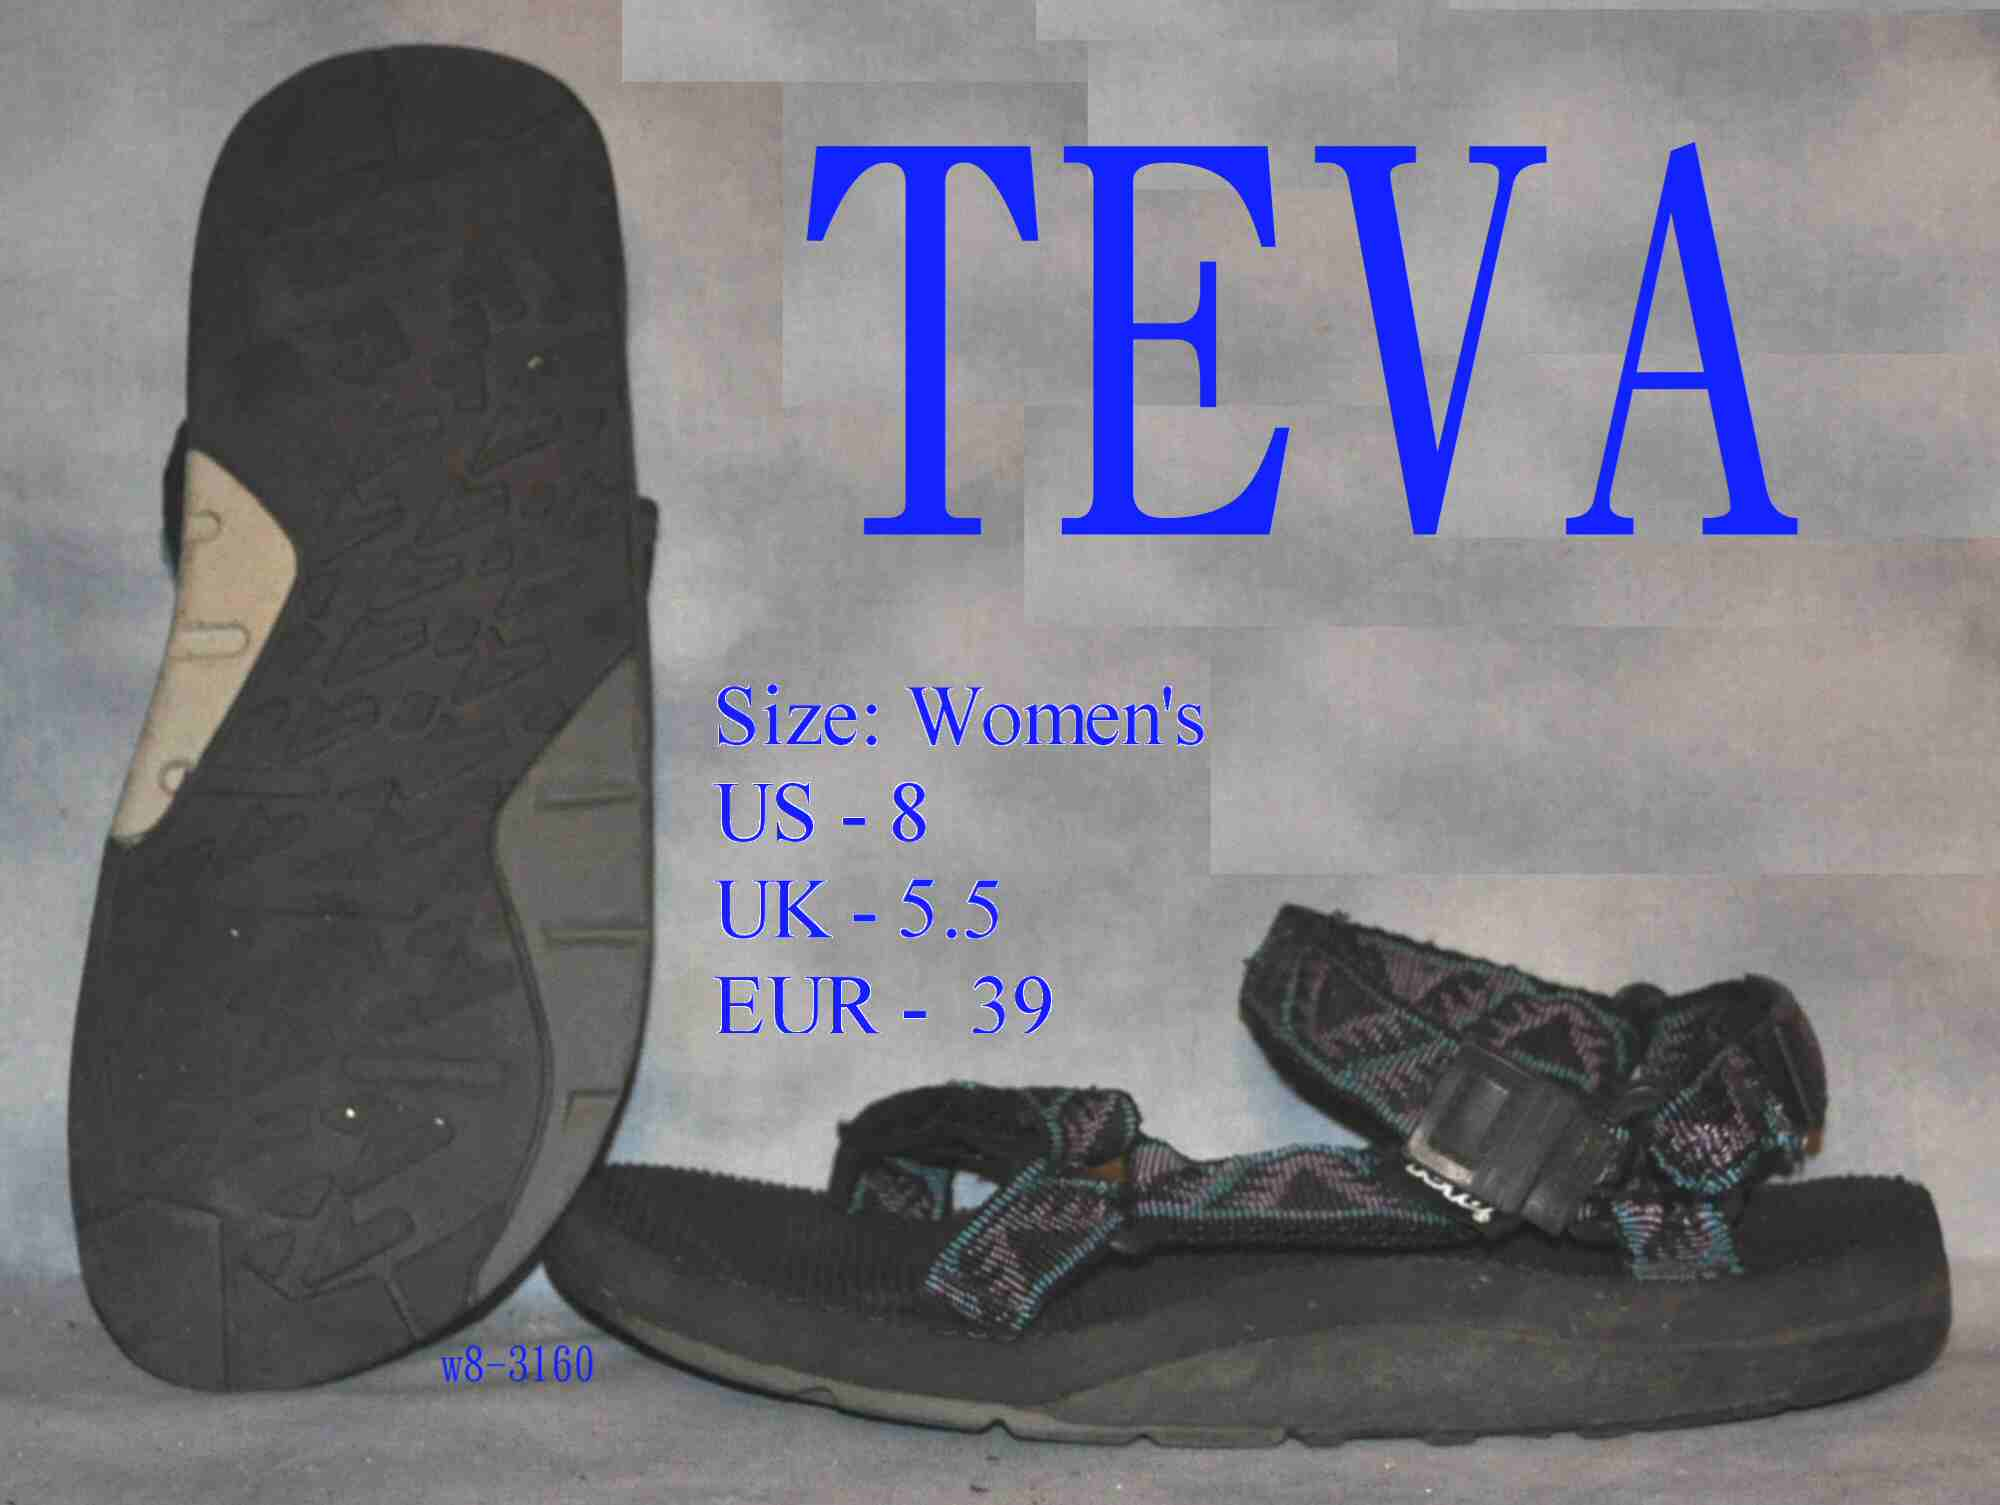 Details about Womens size 8 TEVA Water Sandals hiking shoes 3160